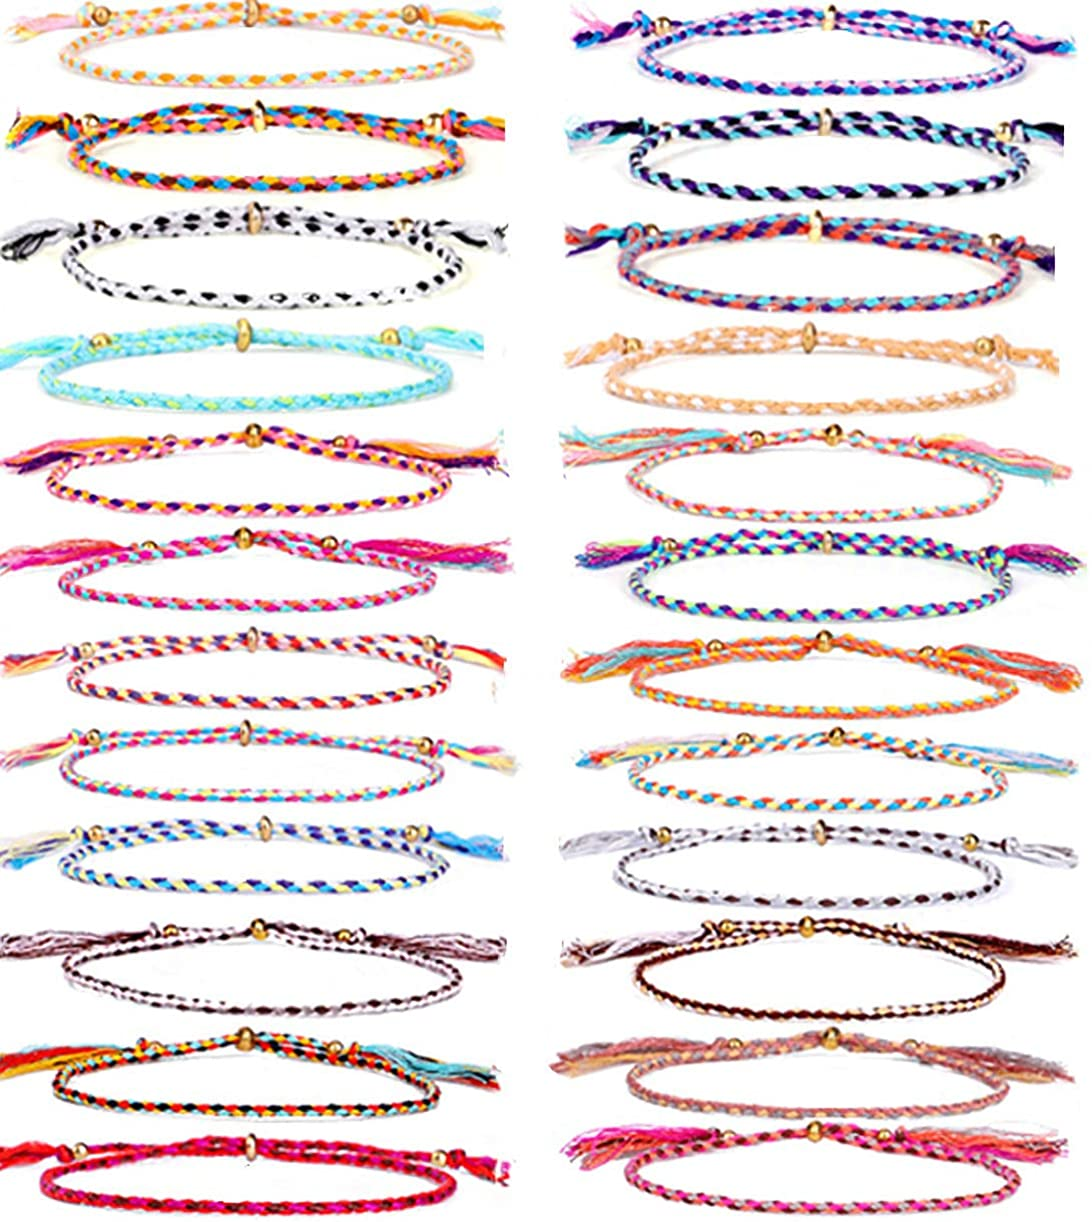 WAINIS 24 Pieces Friendship Sting Bracelets for Women Handmade Wrap Braided Colorful Wrist Cord Adjustable Birthday Gifts-Party Favors